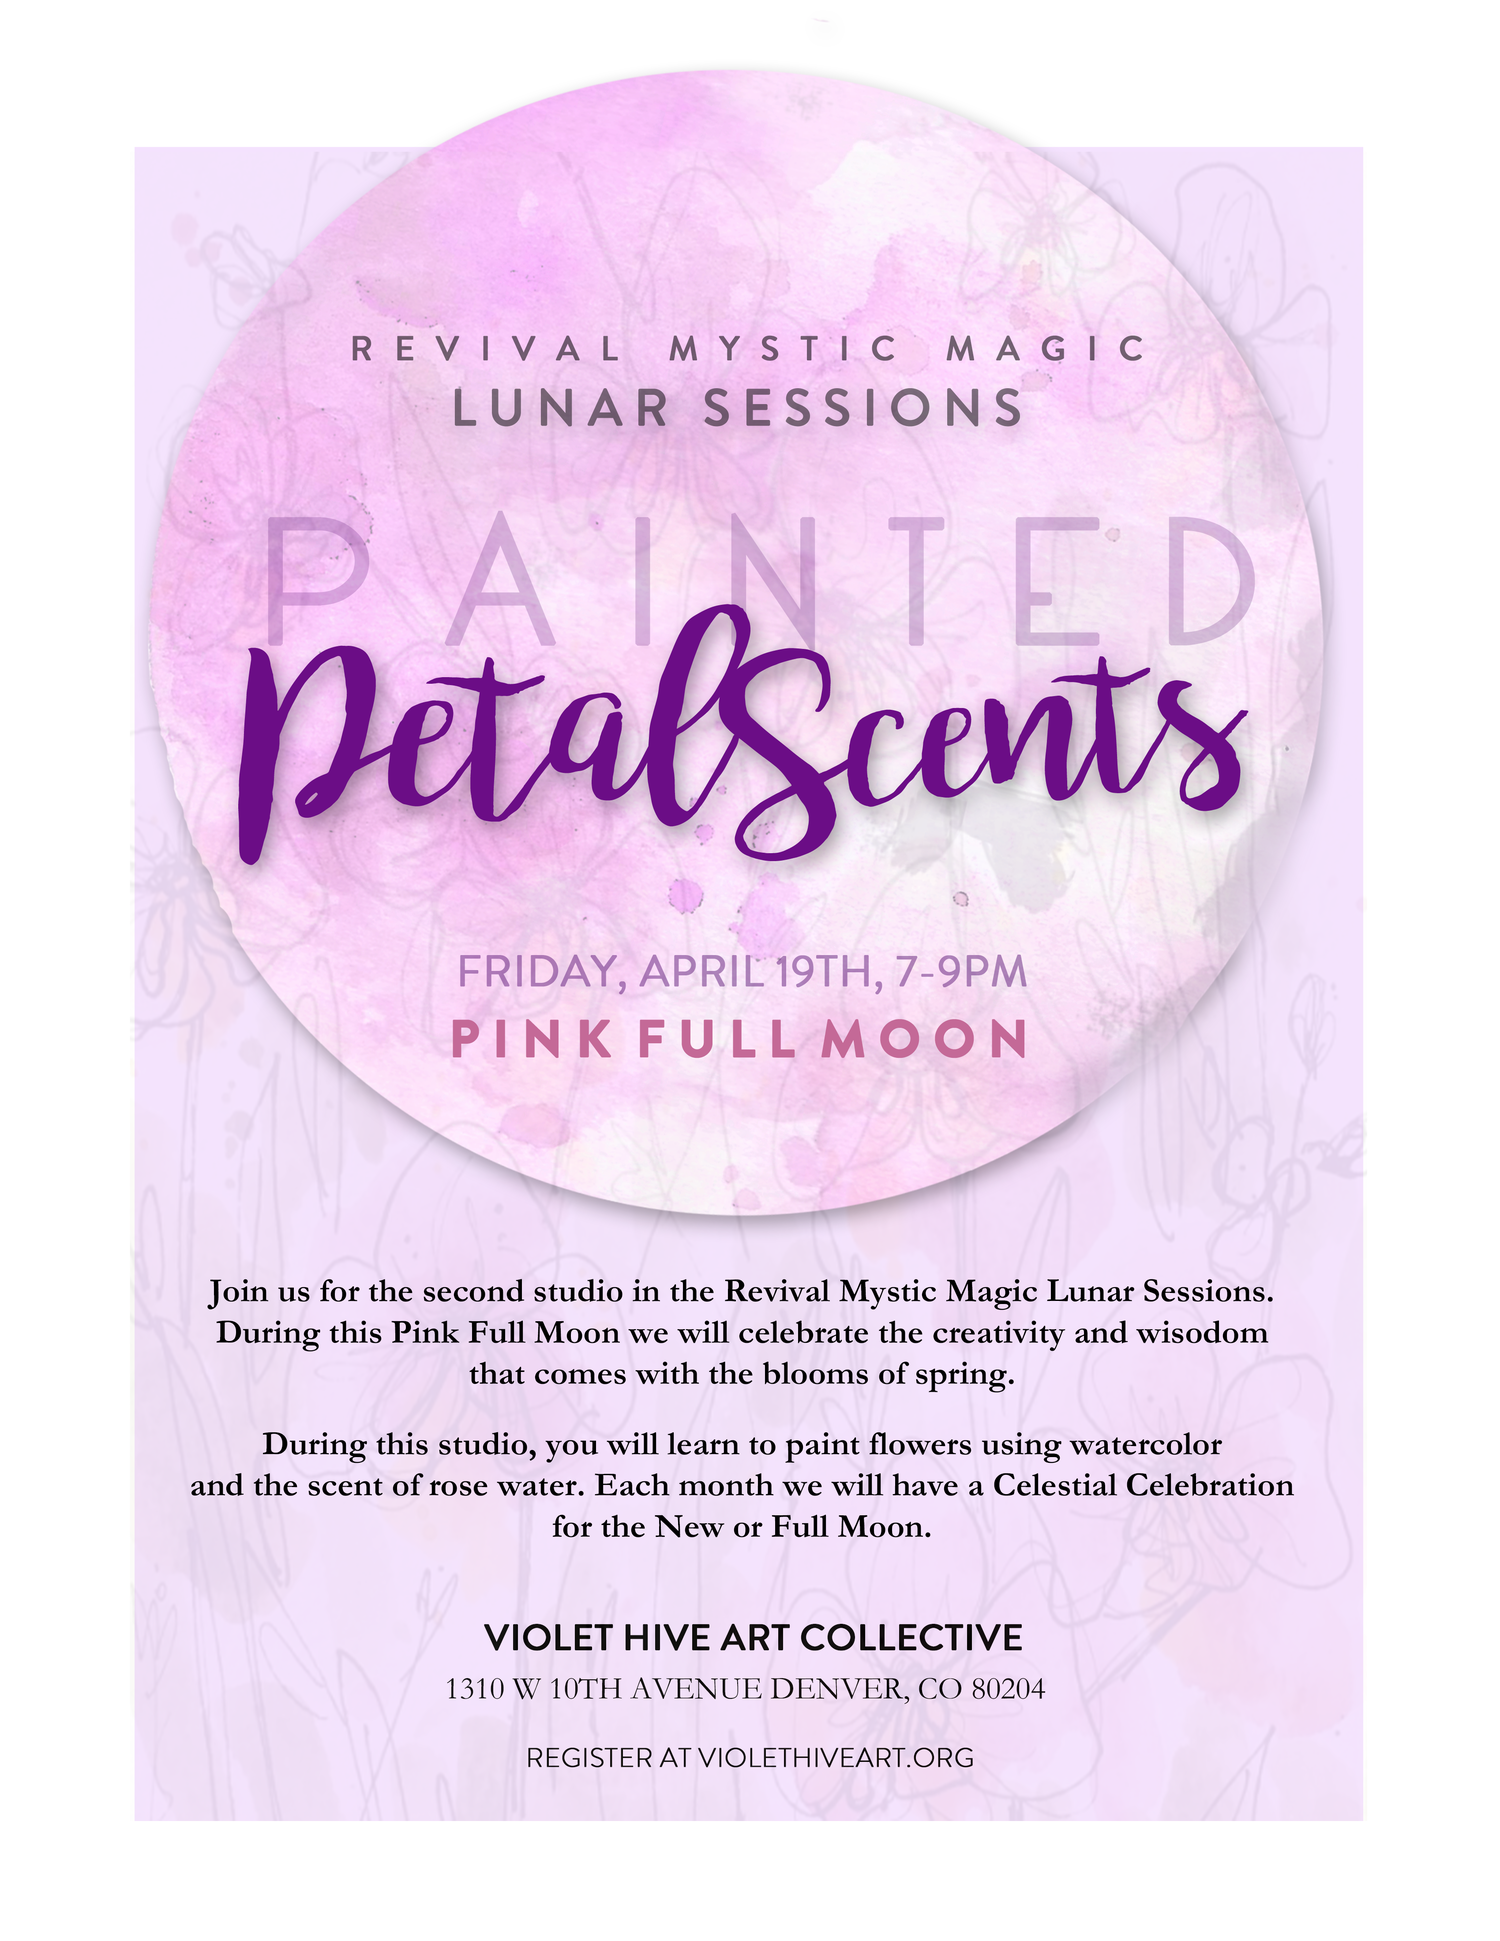 Please fill out a participant waiver as well.   https://www.violethiveart.org/participant-waiver